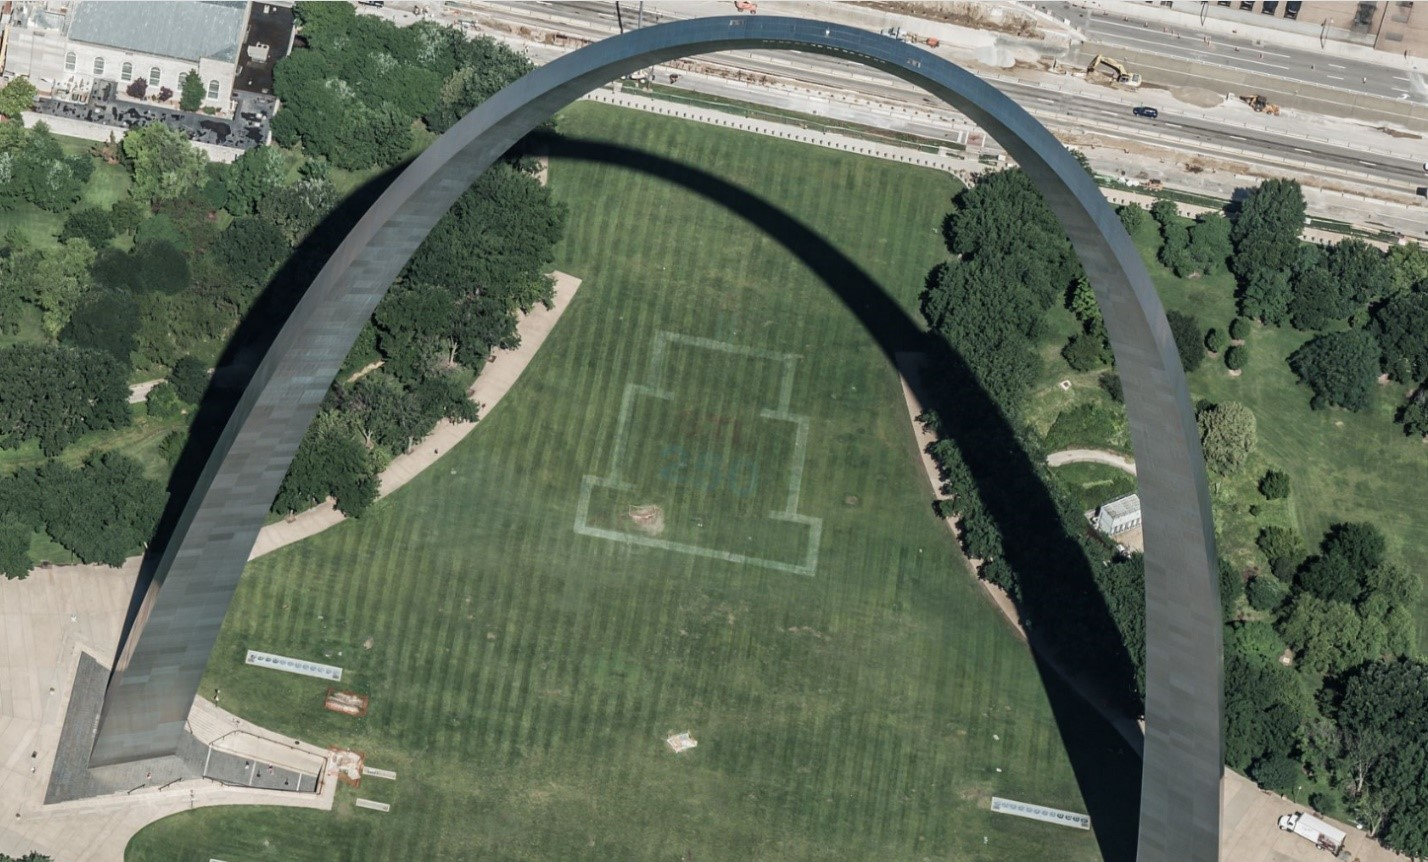 Bing Maps Released New Bird's Eye Imagery GatewayArch_StLouisMO.jpg